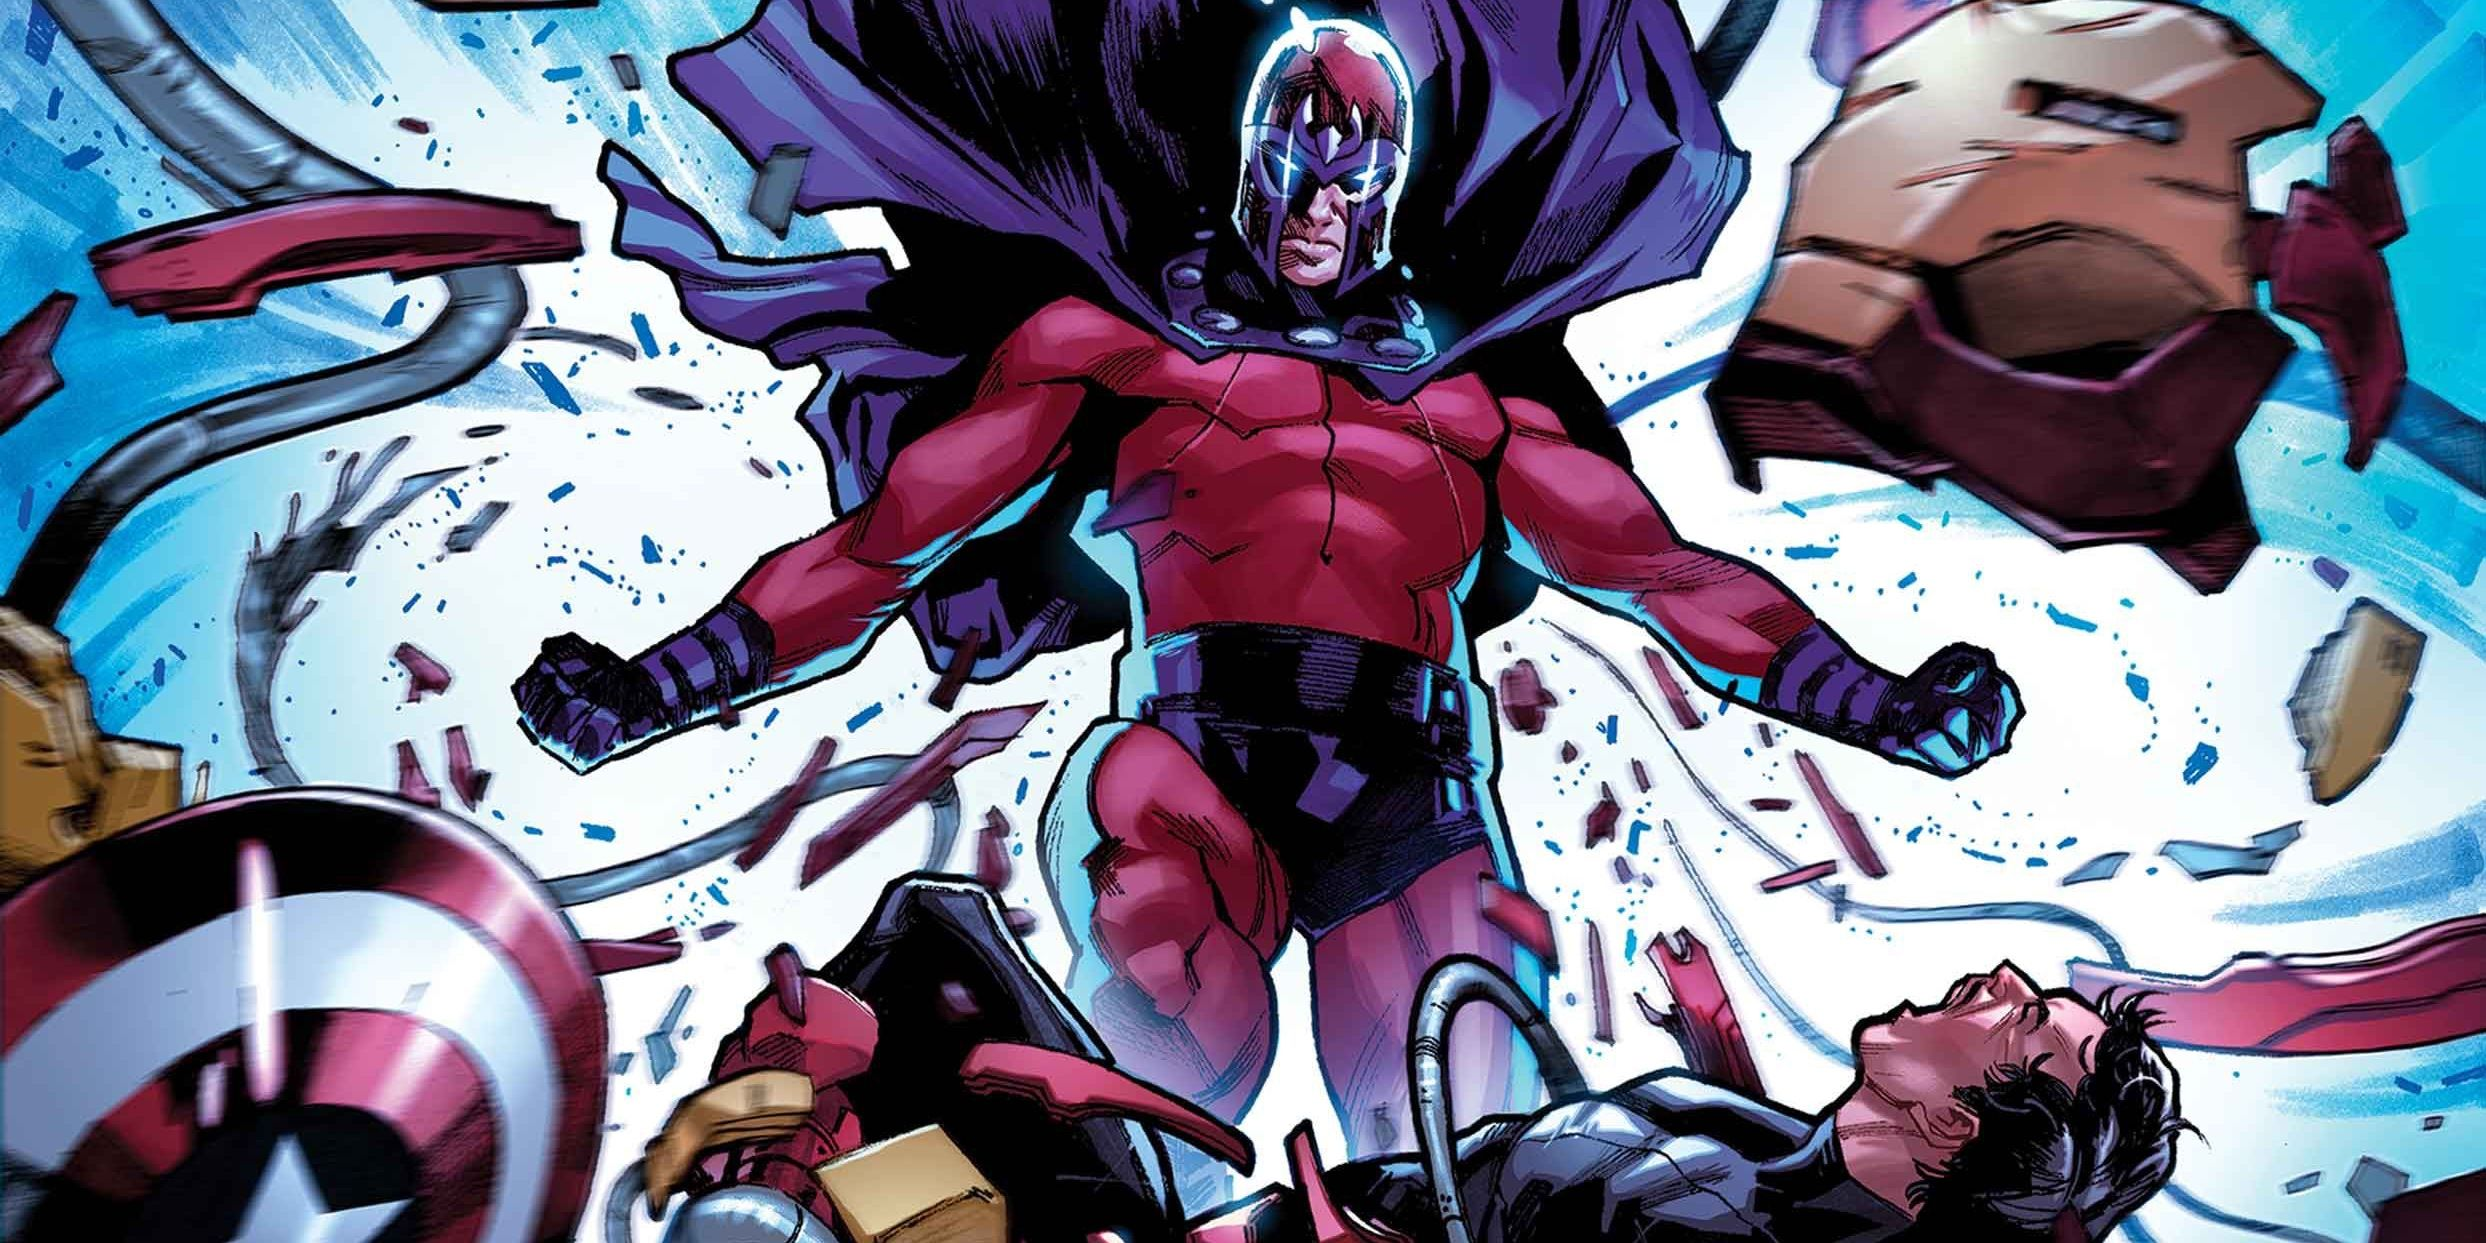 Magneto tears the armor right off of Iron Man.